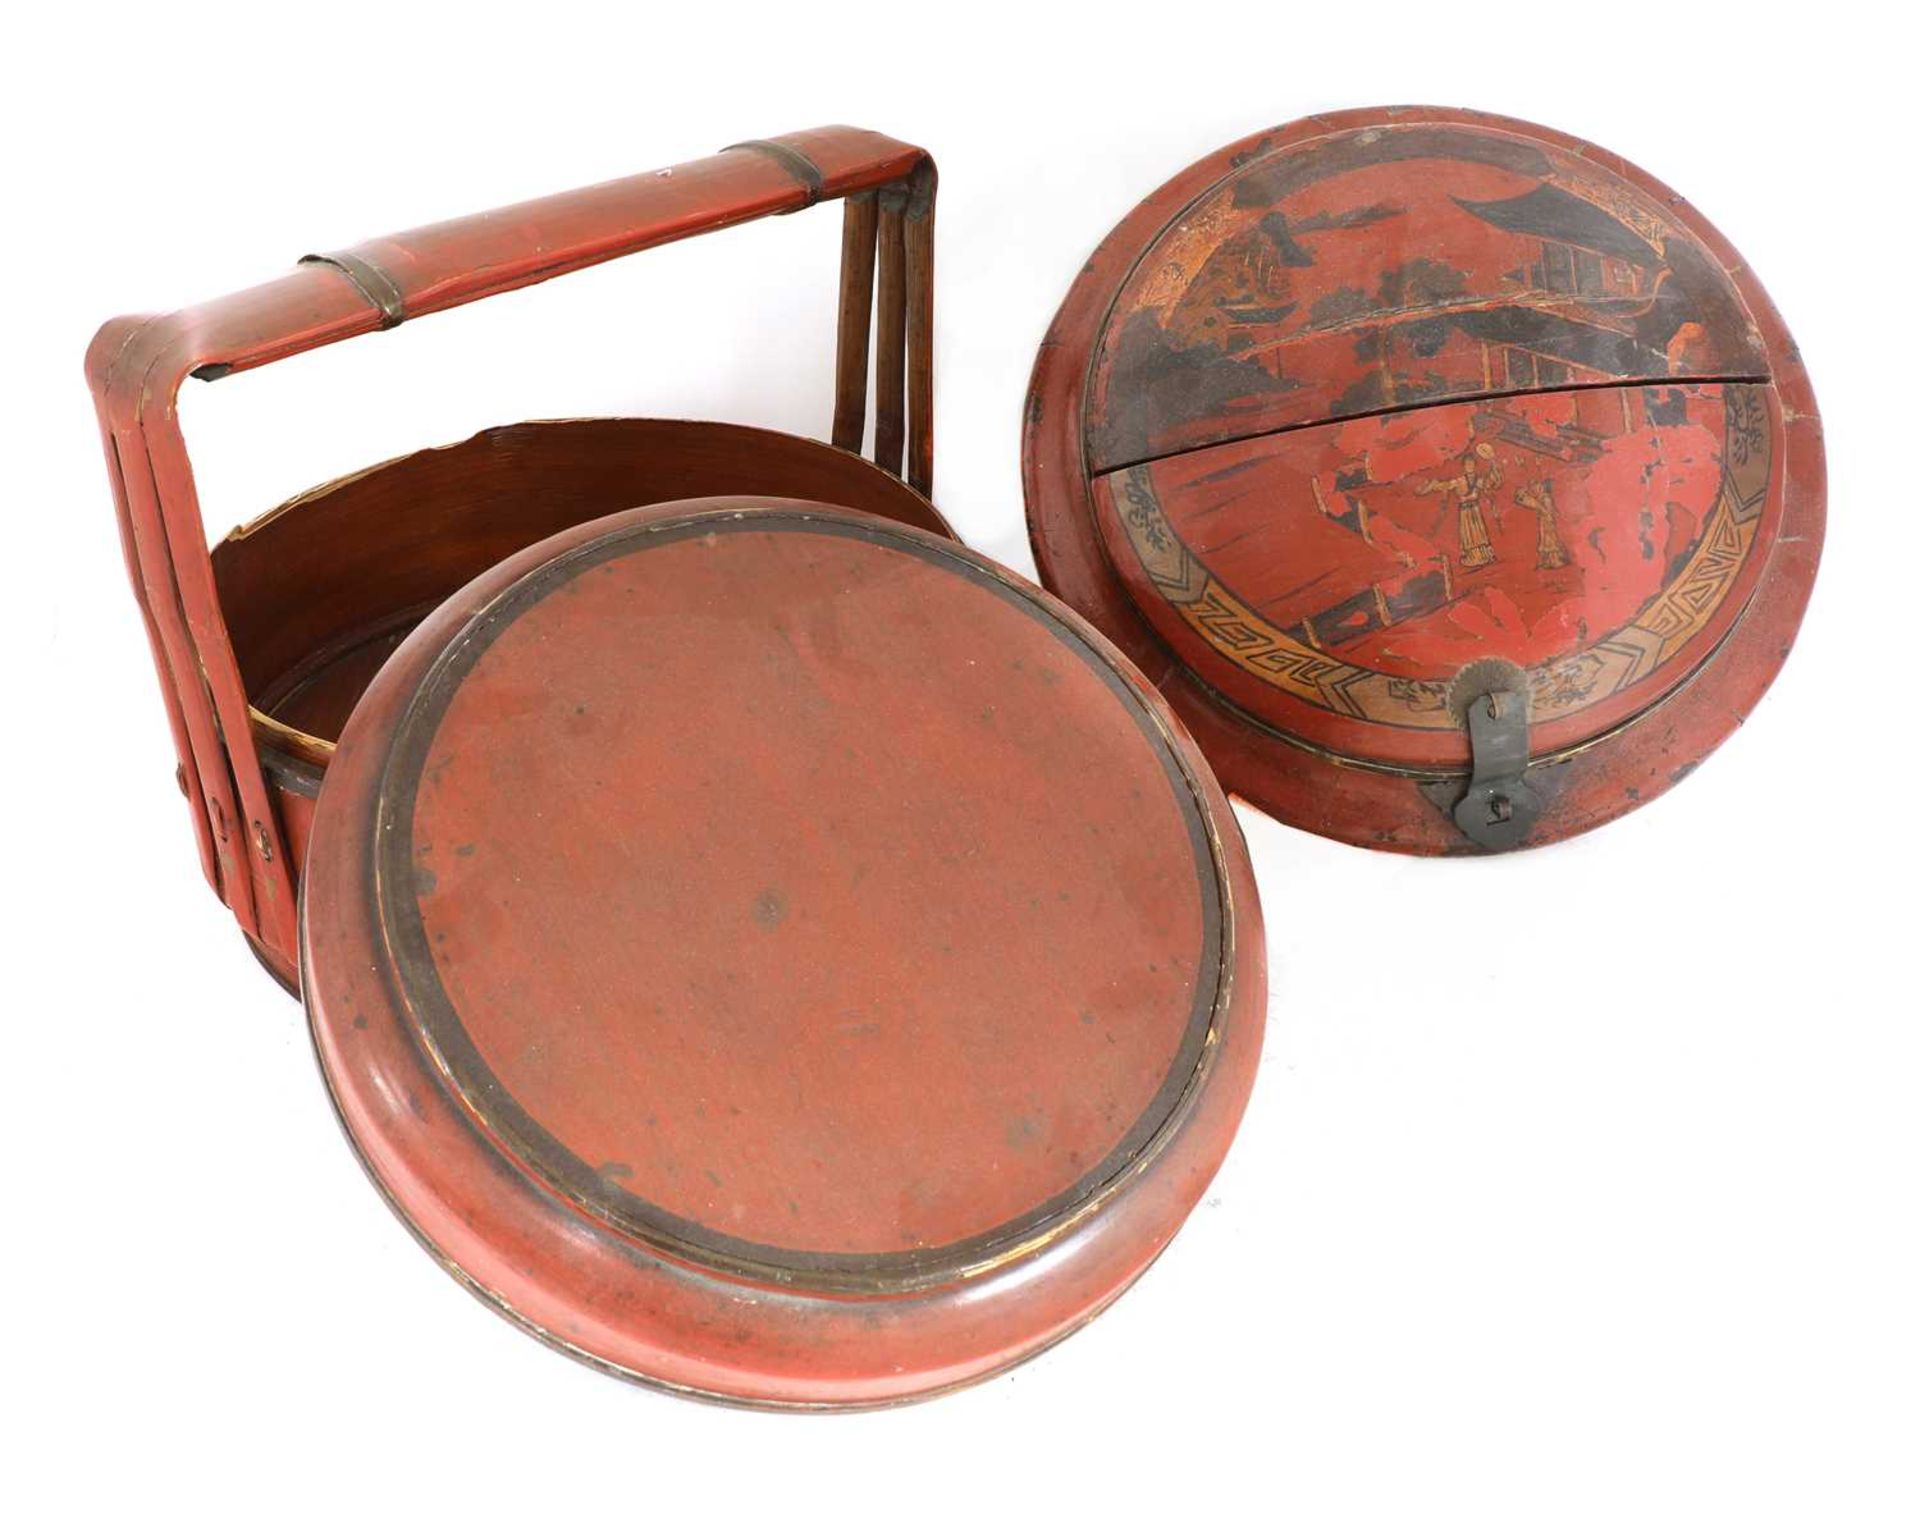 A Chinese red-lacquered food carrier, - Image 4 of 7